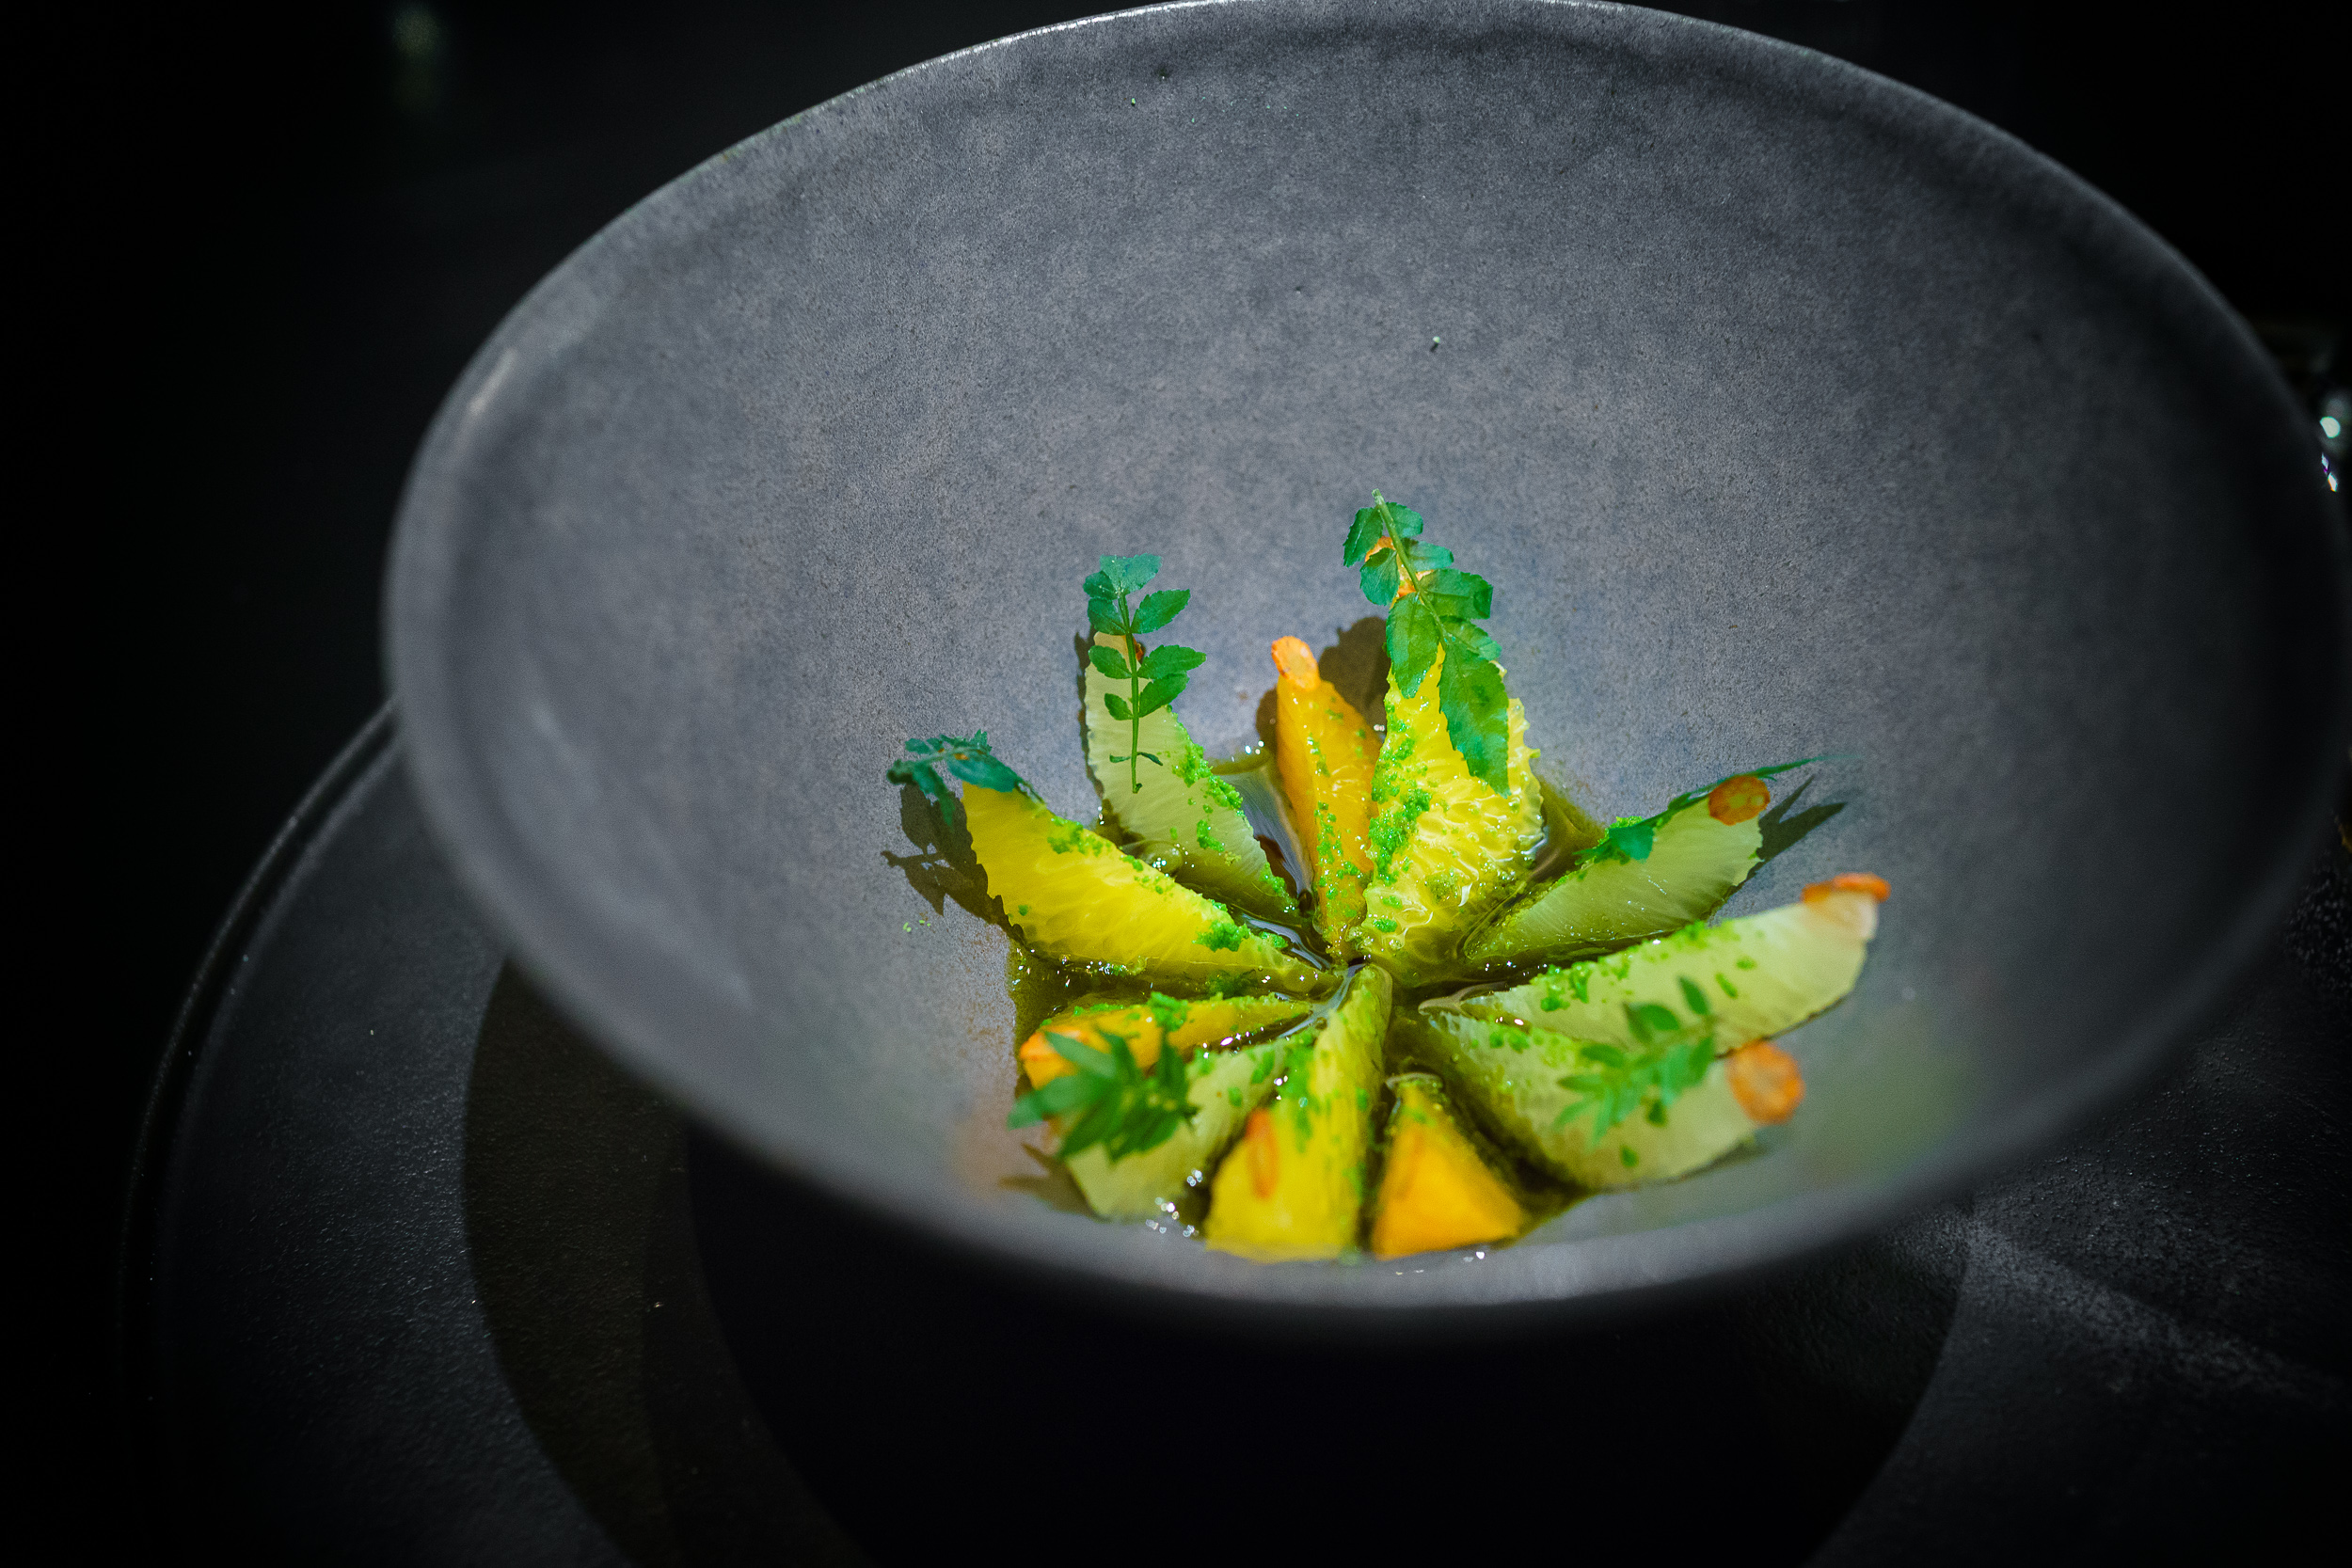 3rd Course: Citrus and long pepper